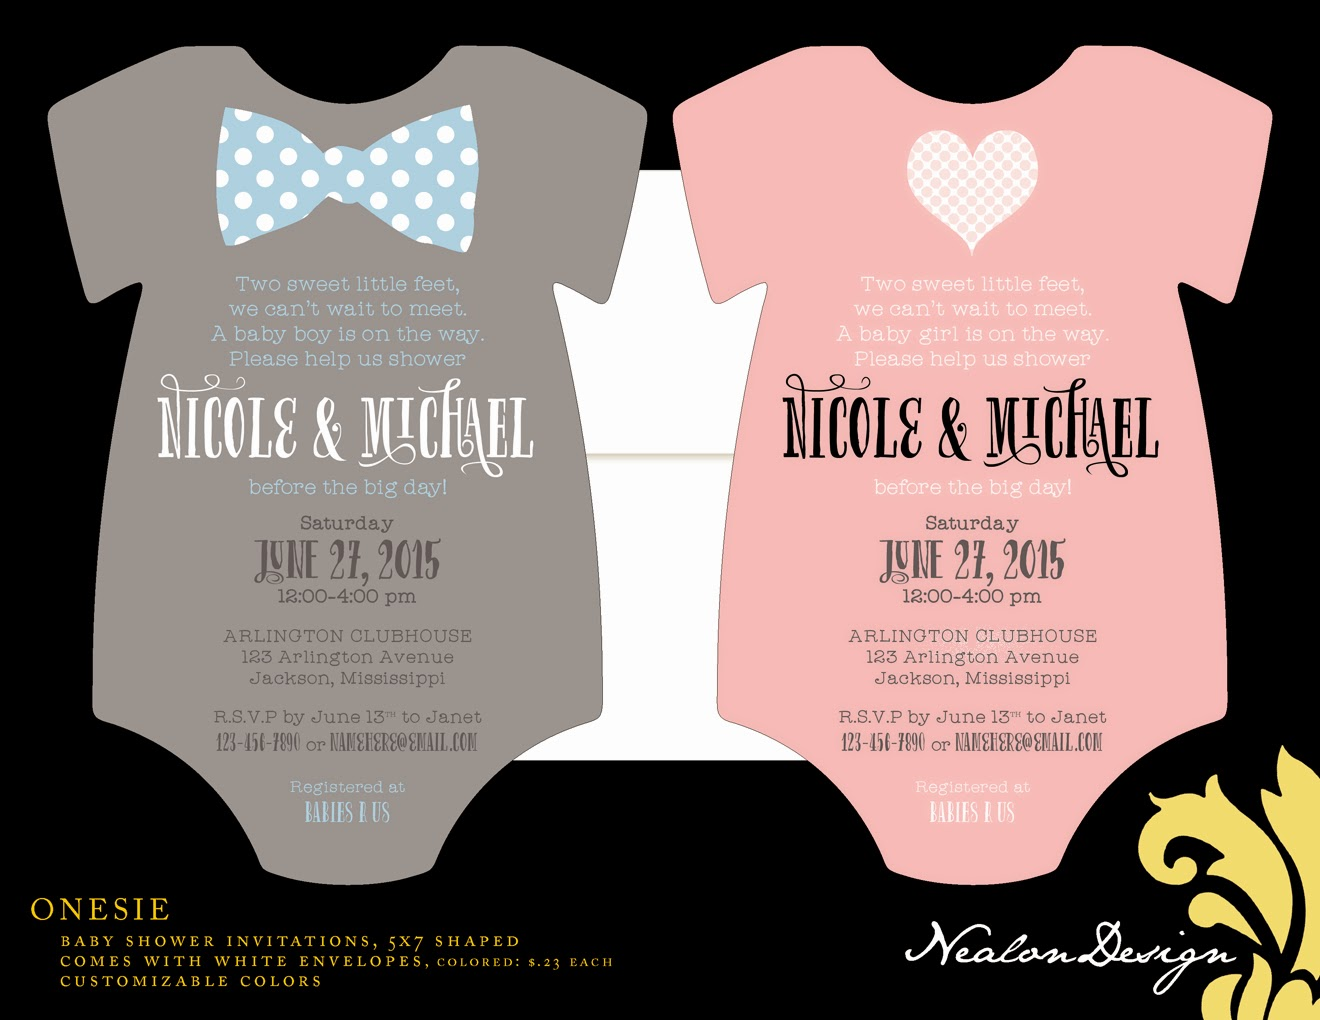 Nealon Design: ONESIE baby shower invitations